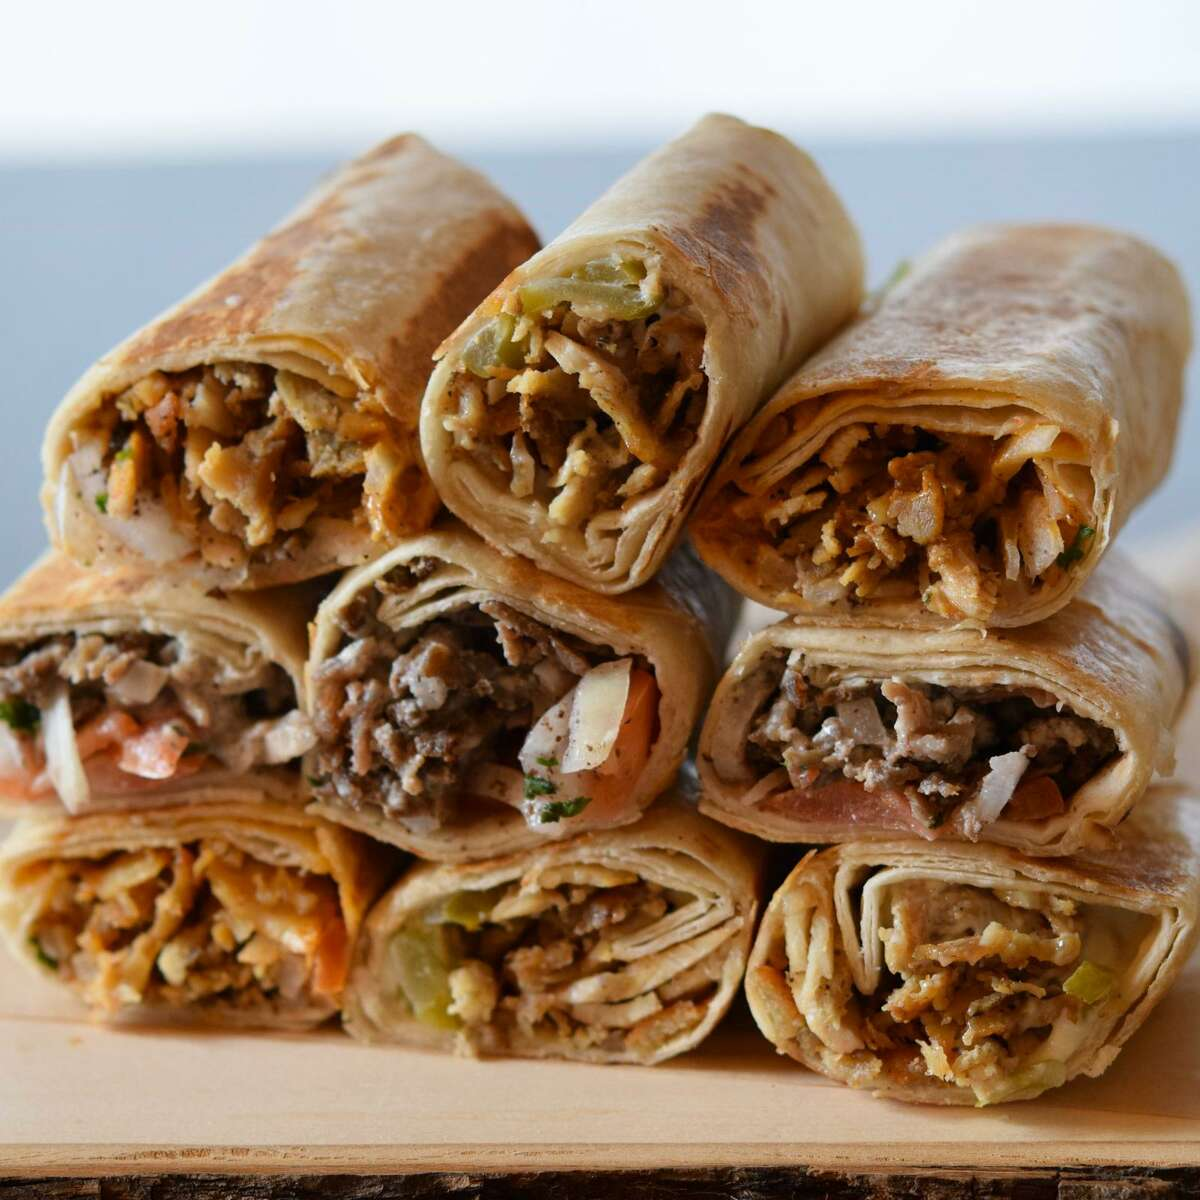 The Irving-based Mediterranean spot has filed for permitting in San Antonio. The franchise will bring a variety of shawarma wraps, salads and bowls.